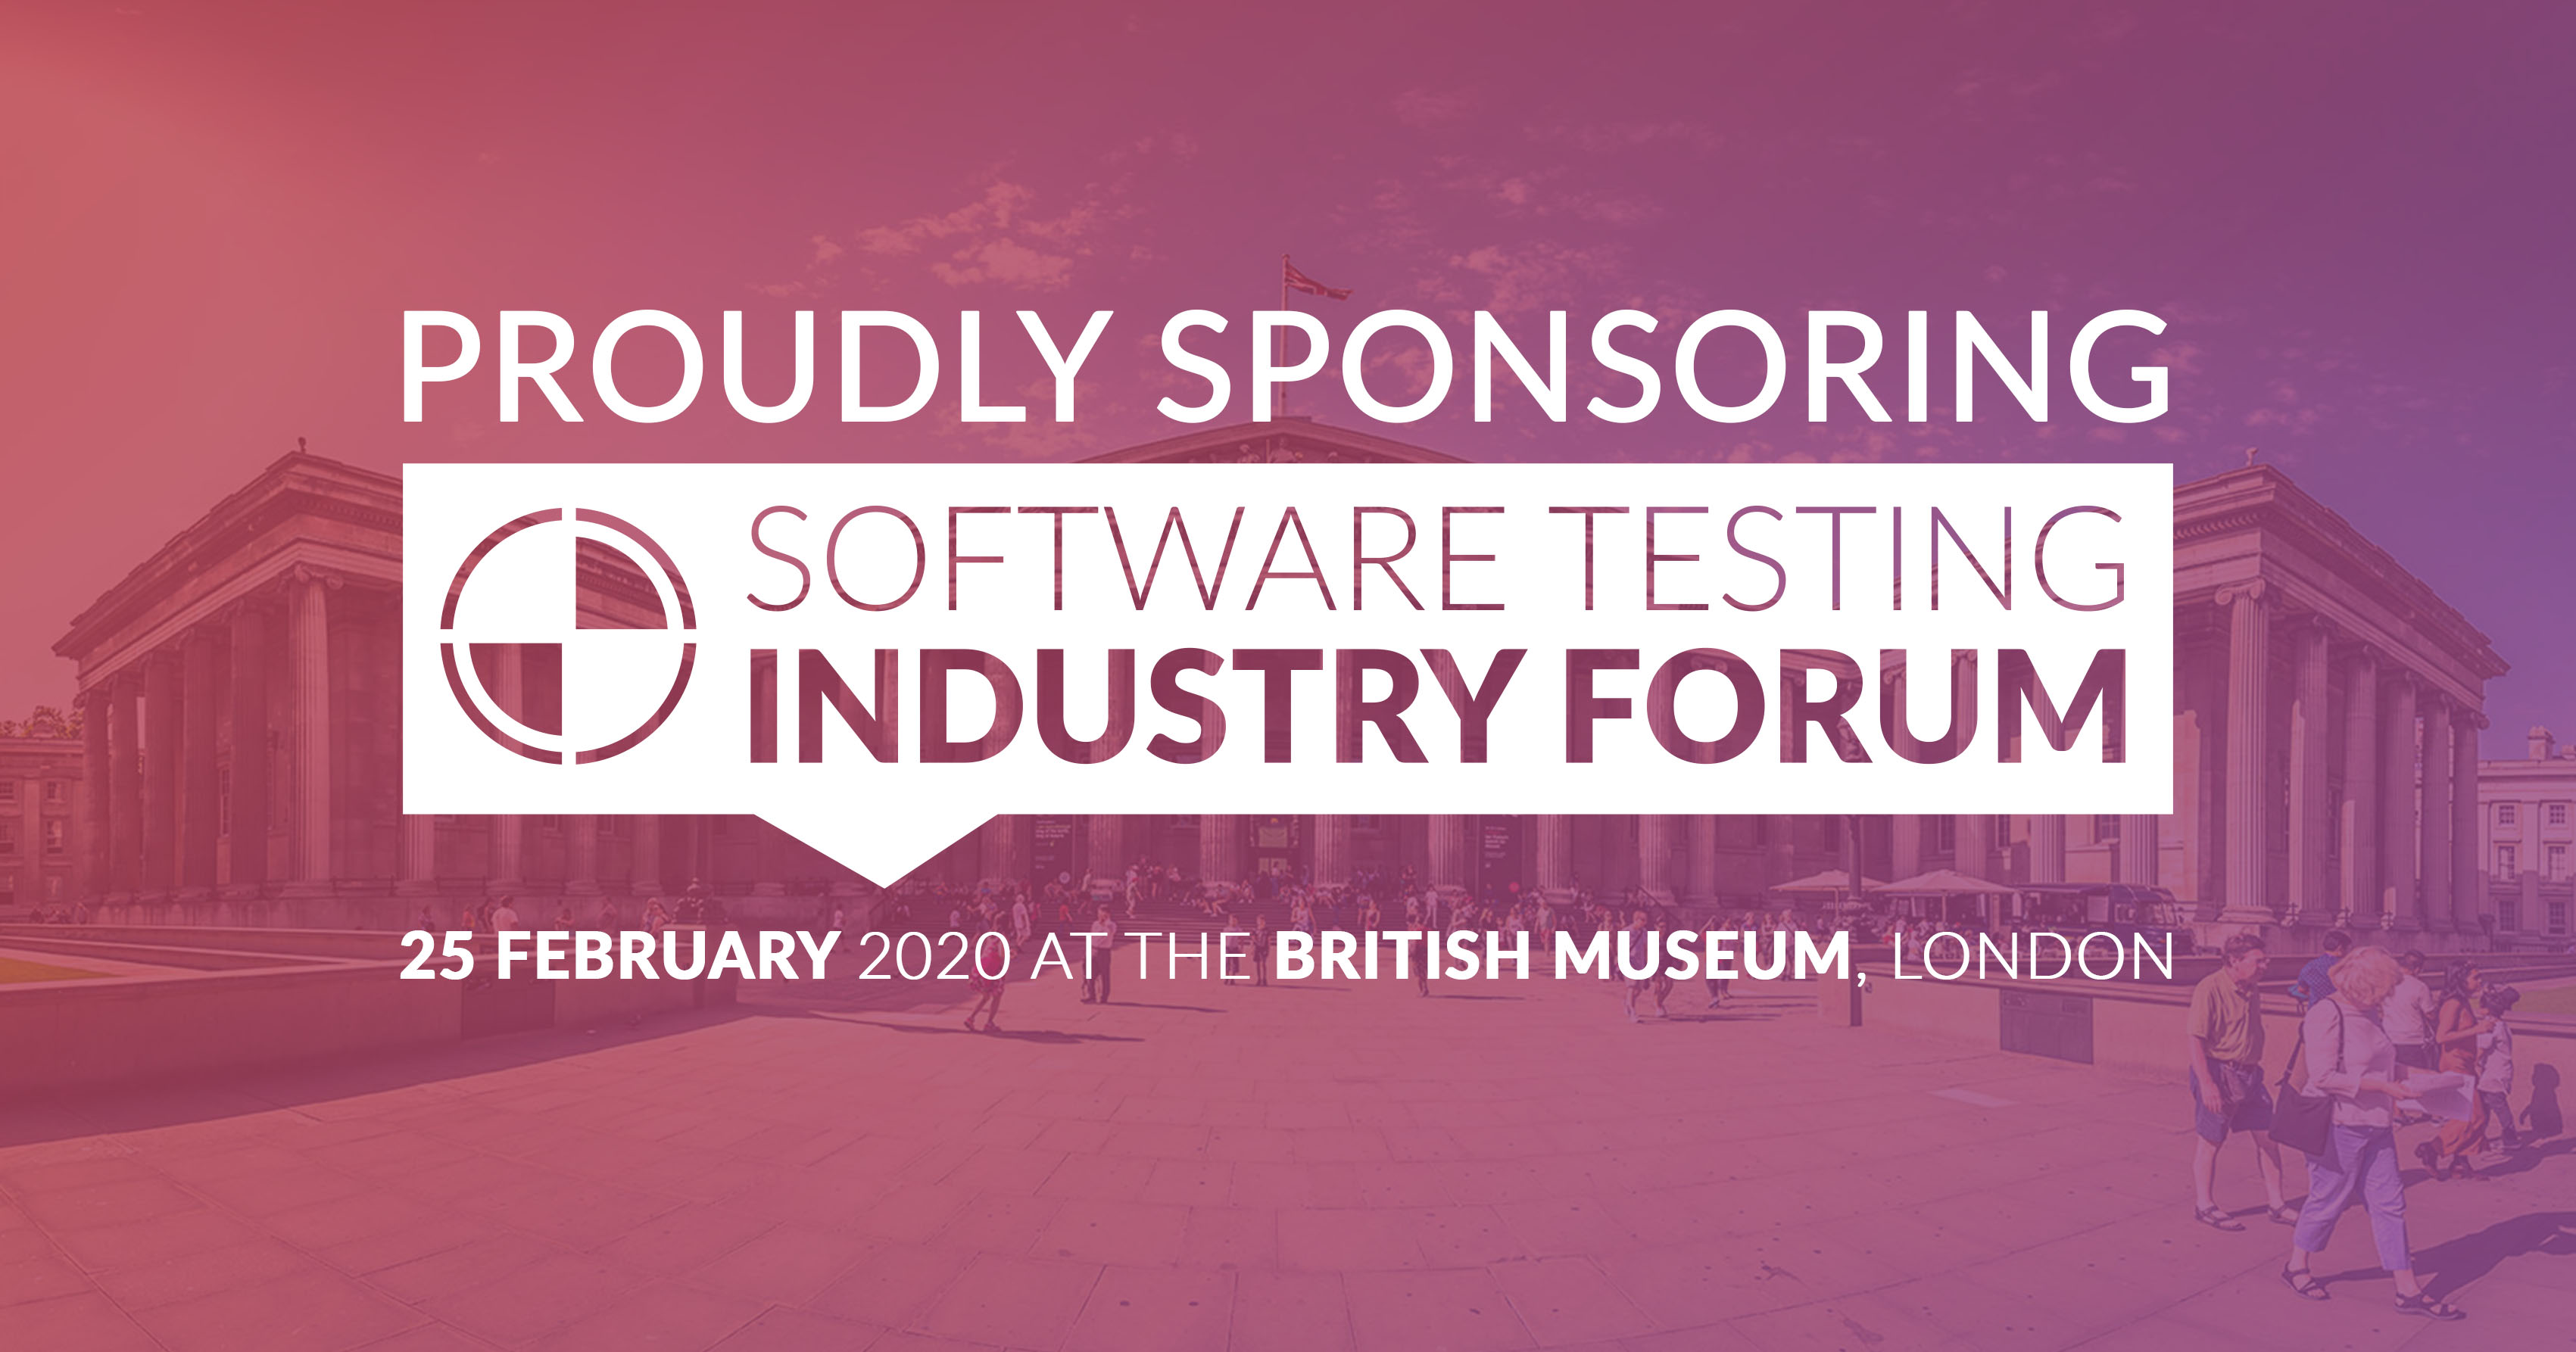 Proudly Sponsoring the Software Testing Industry Forum